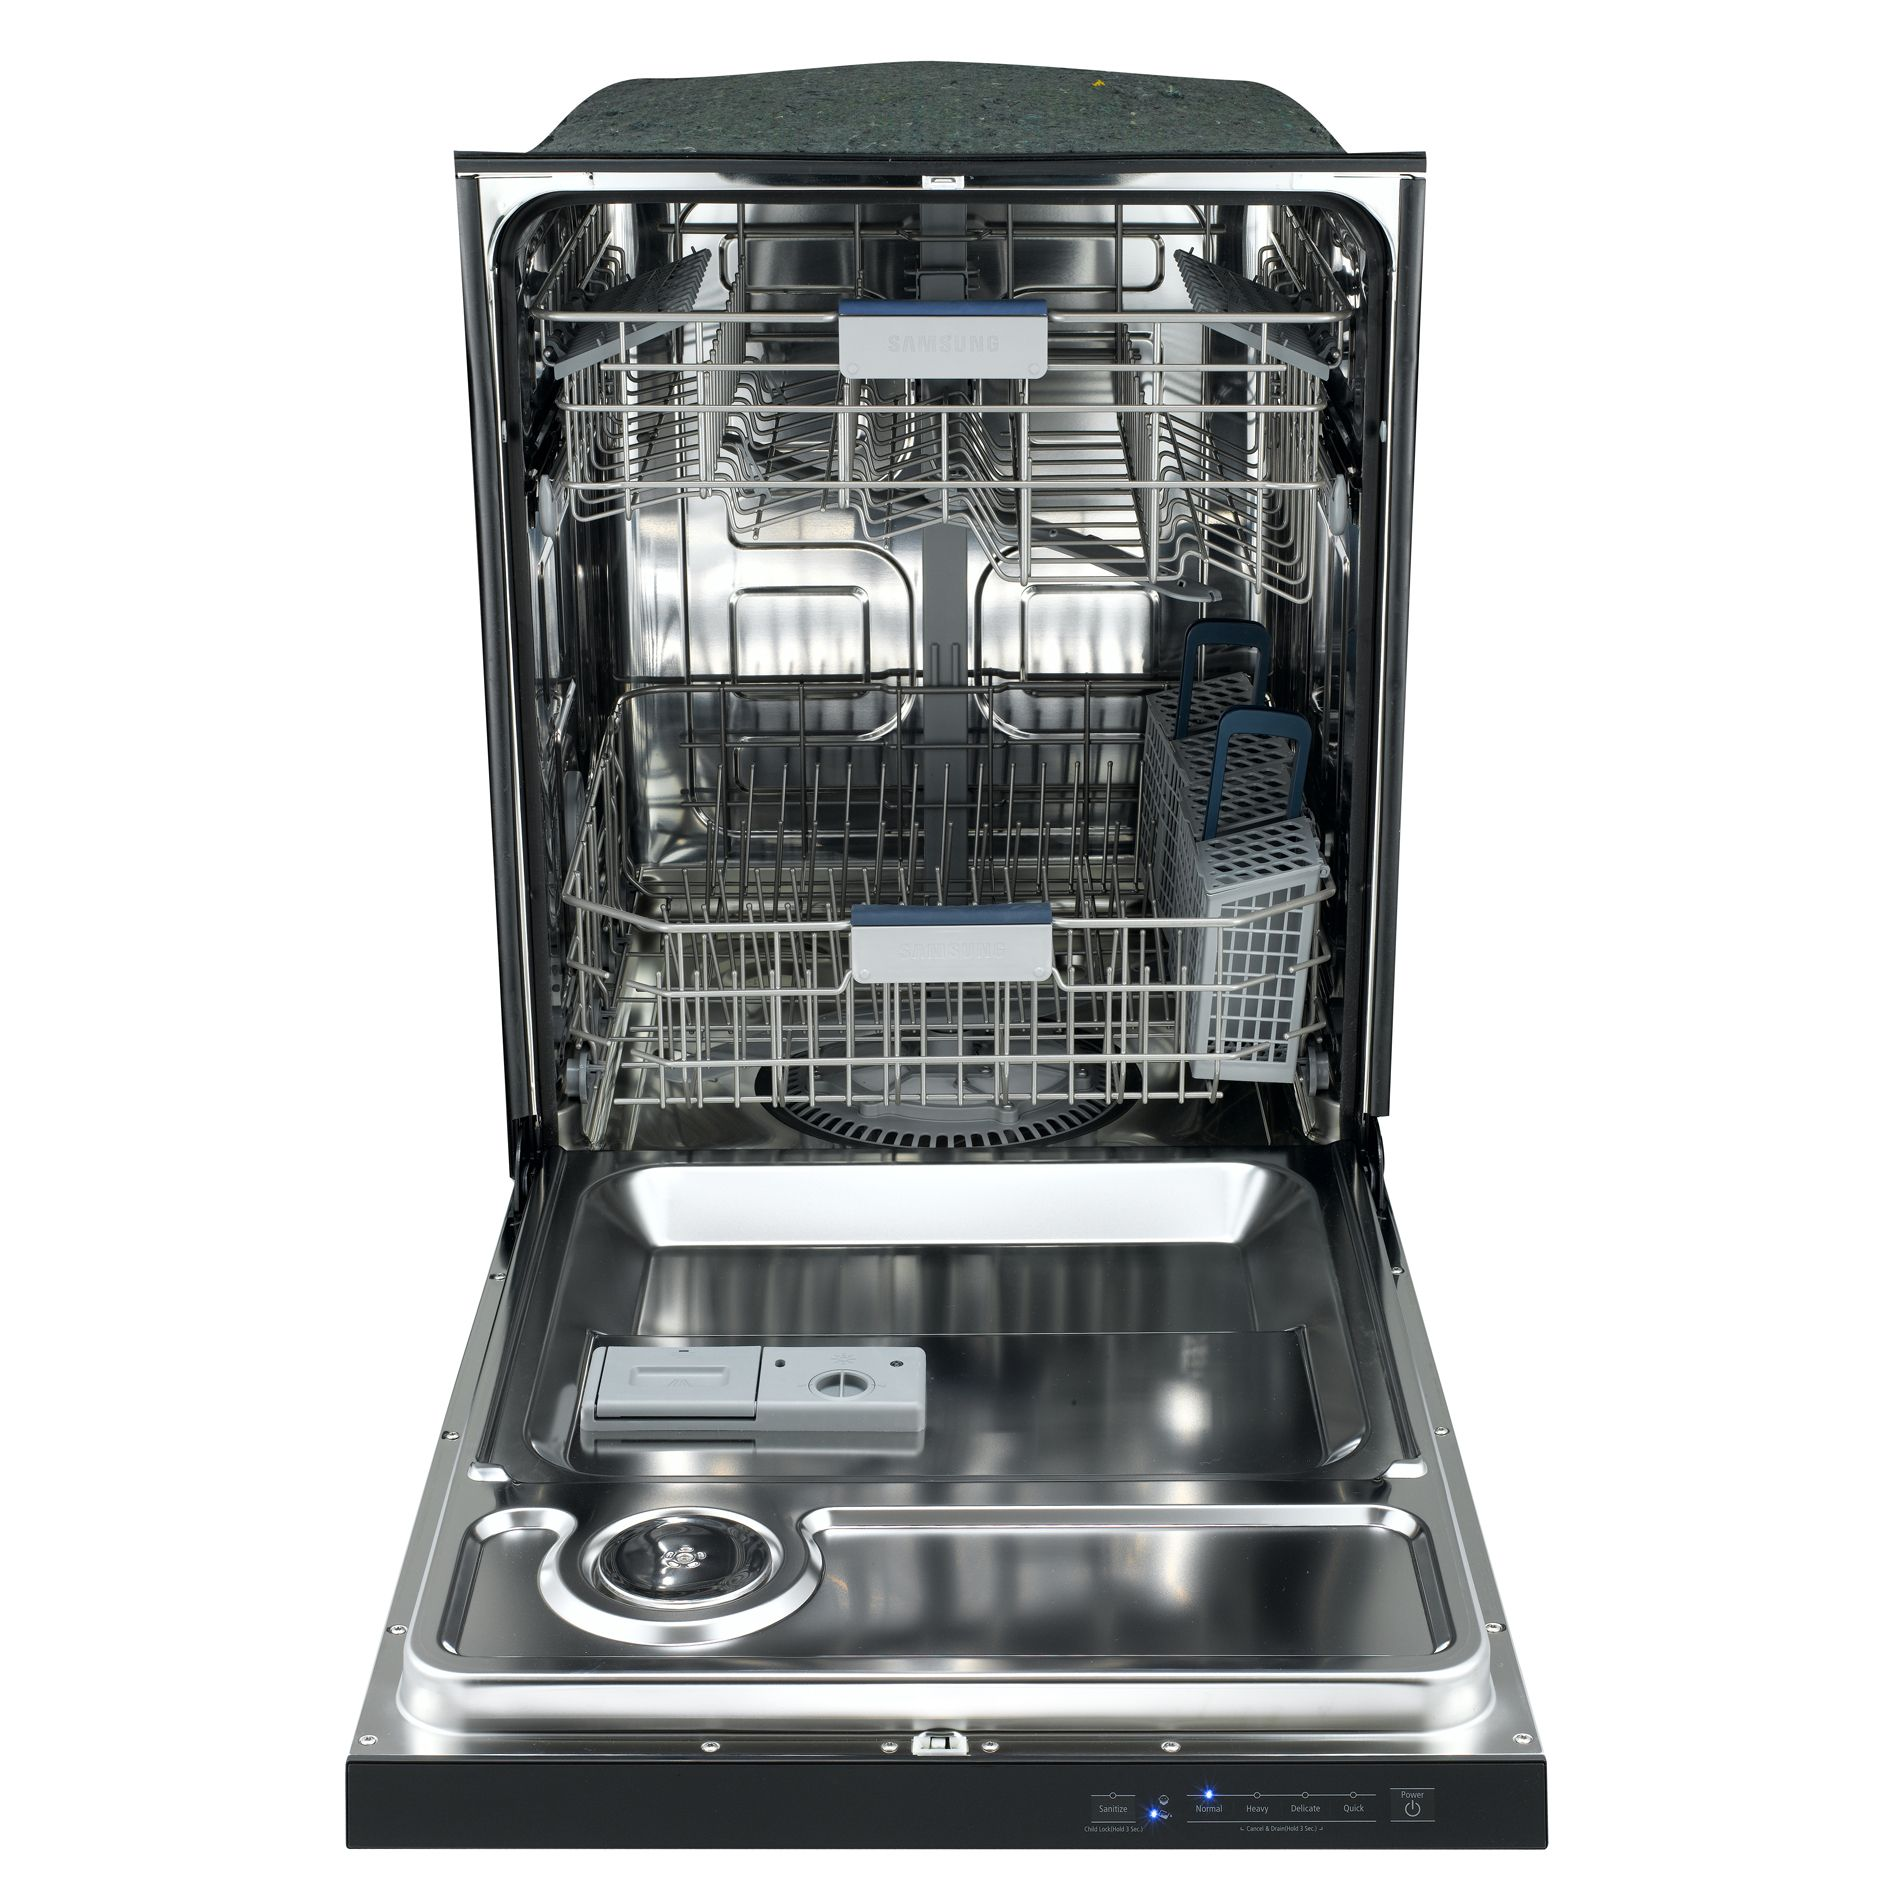 "Samsung 24"" Built-In Dishwasher - Black"